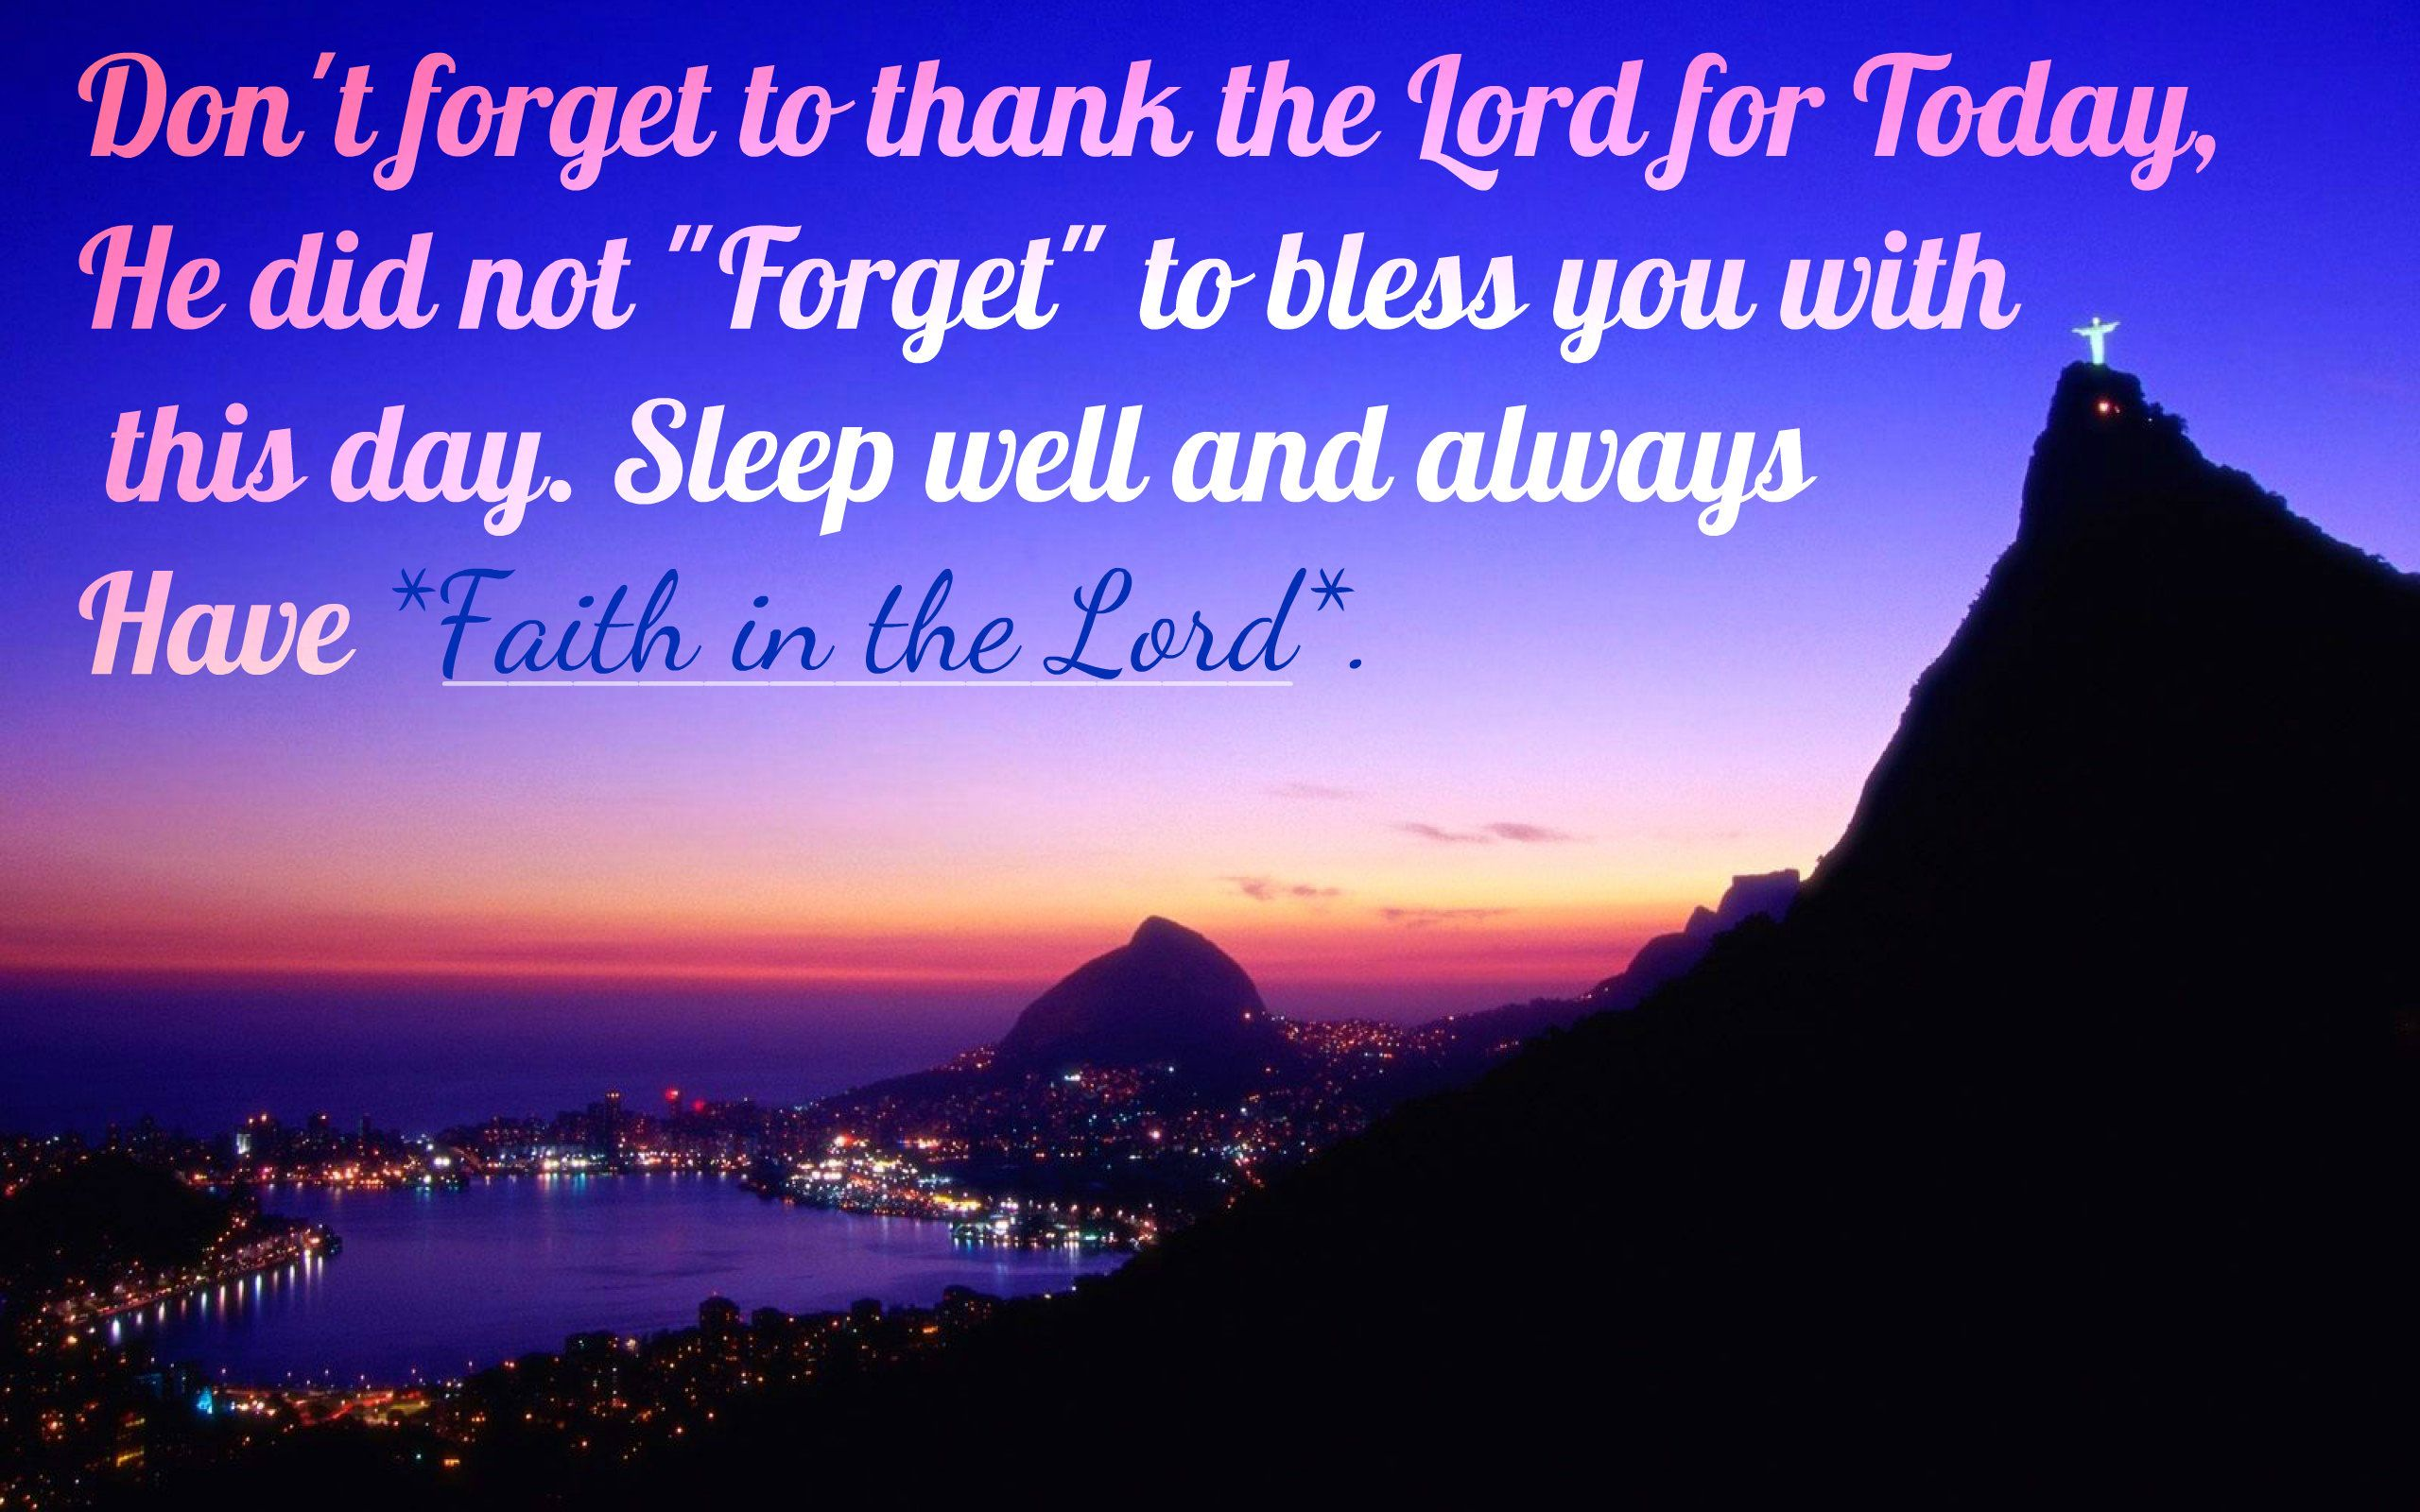 Good Night Blessings Images And Quotes: Christian Night Prayer